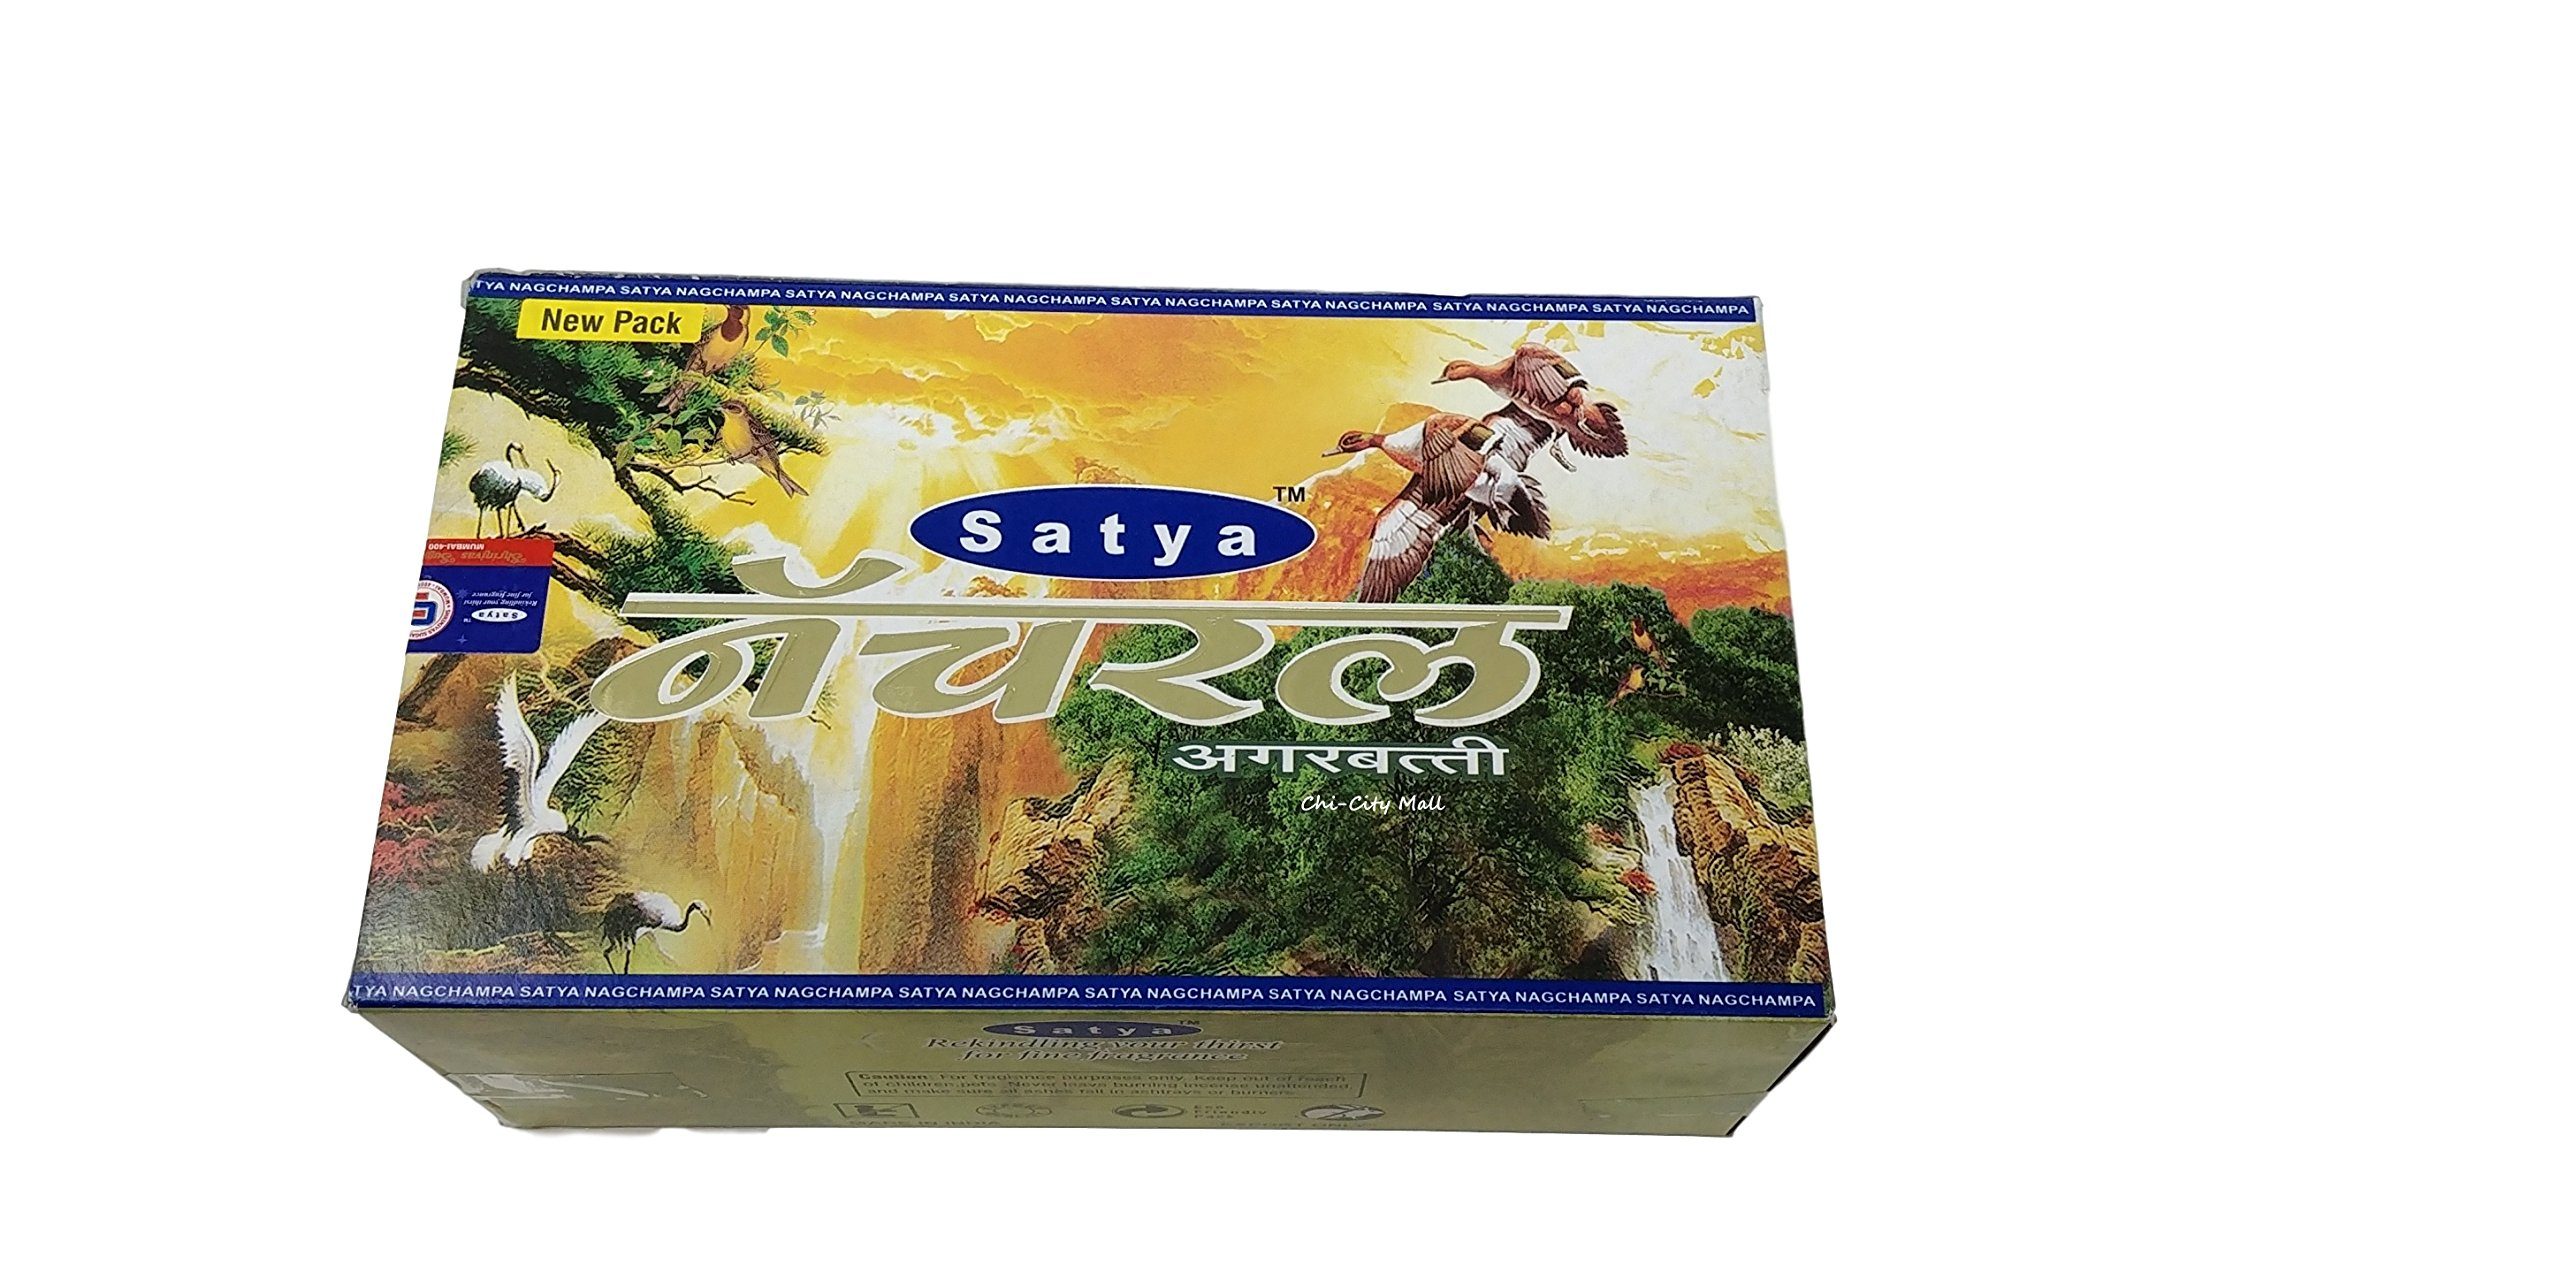 Satya Nag Champa Natural Agarbatti Incense Sticks | Signature Fragrance | Net Wt: 15g x 12 boxes = 180g | Exclusively Made in India | Export Quality | Handrolled Non-Toxic Incense